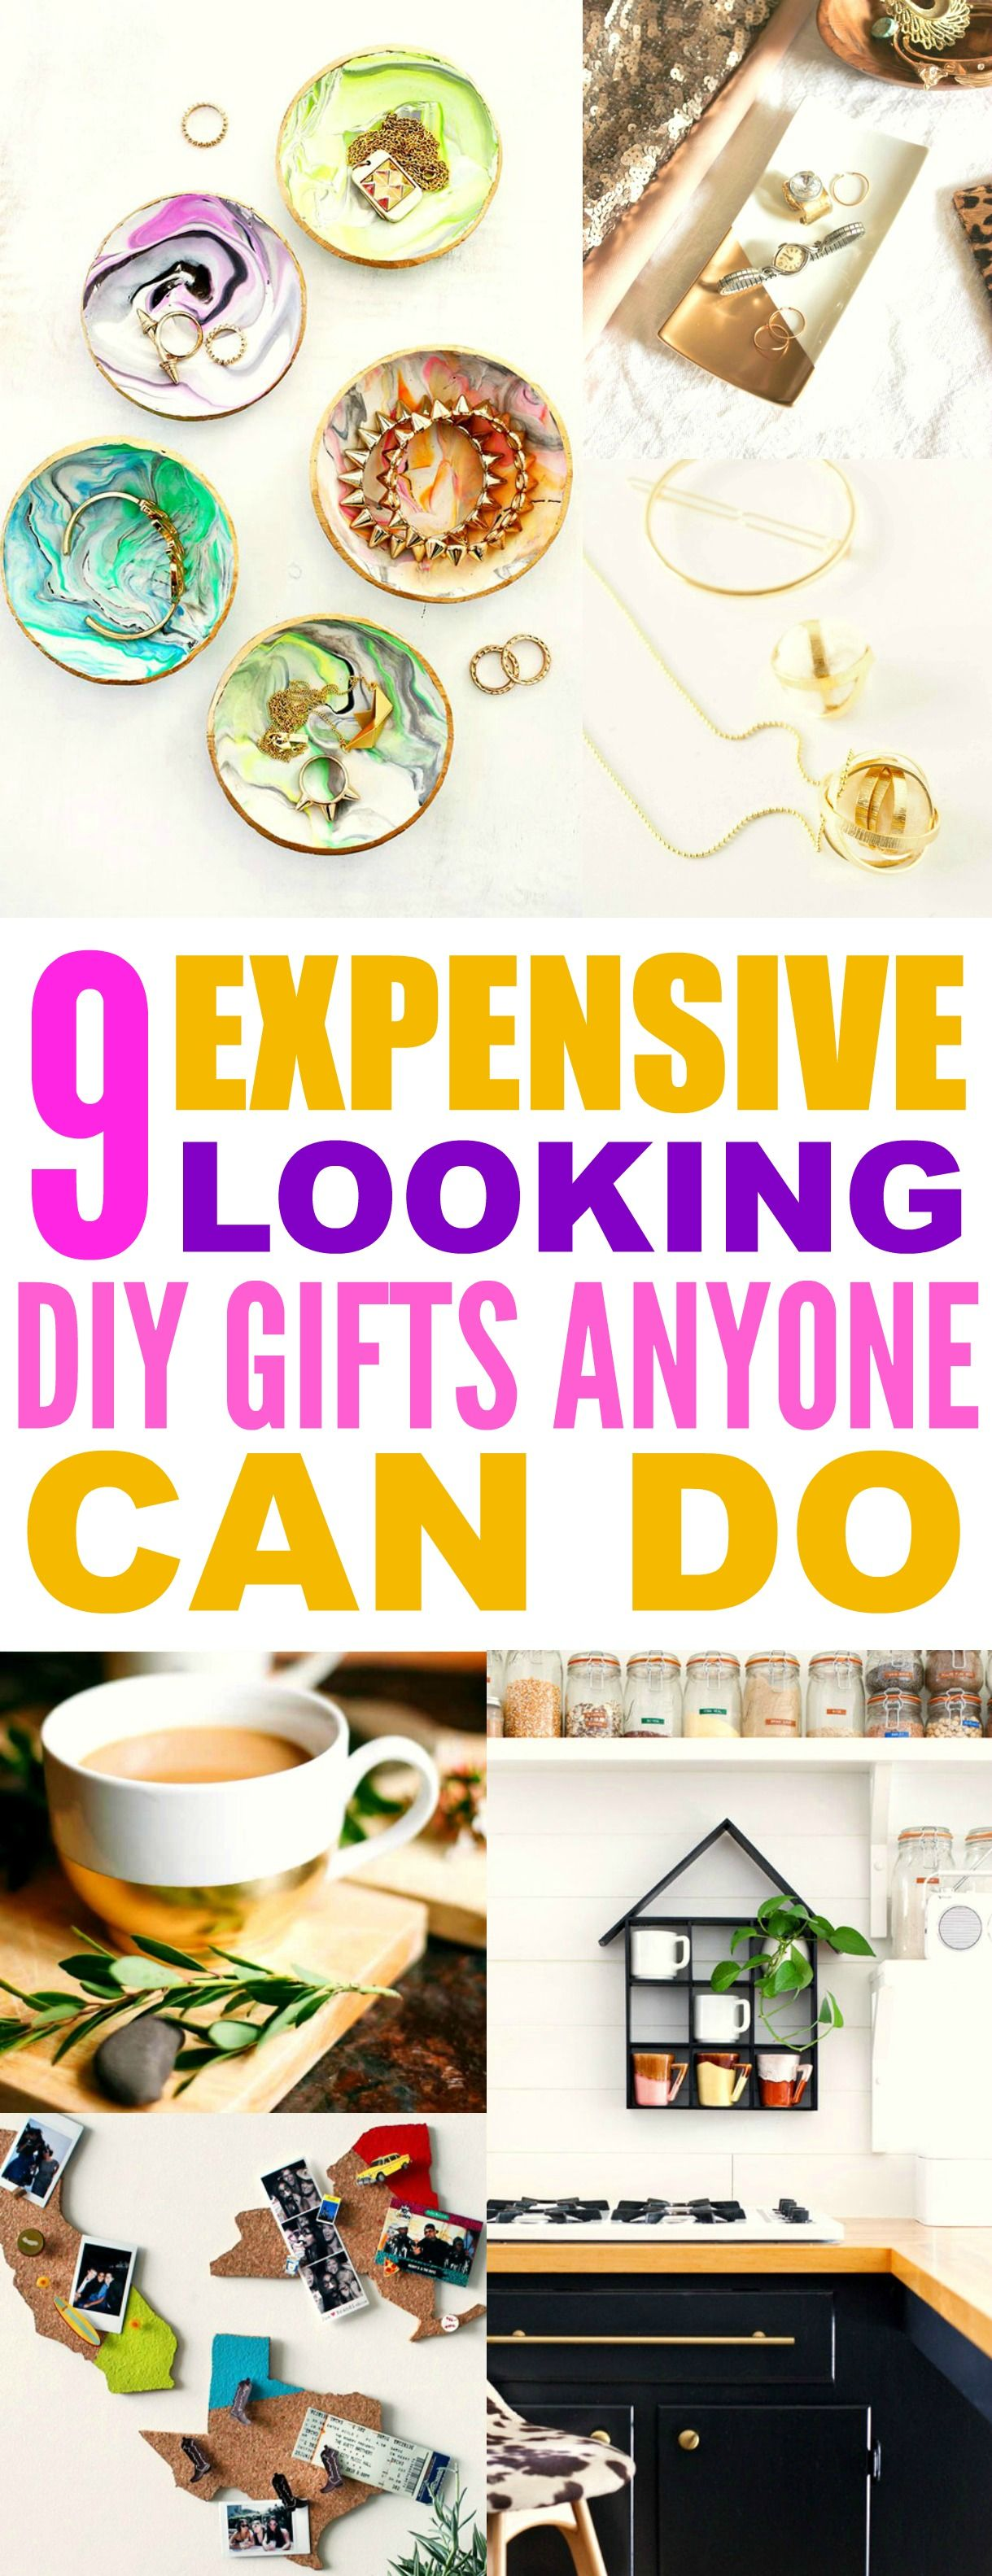 9 Expensive Looking Easy DIY Gifts